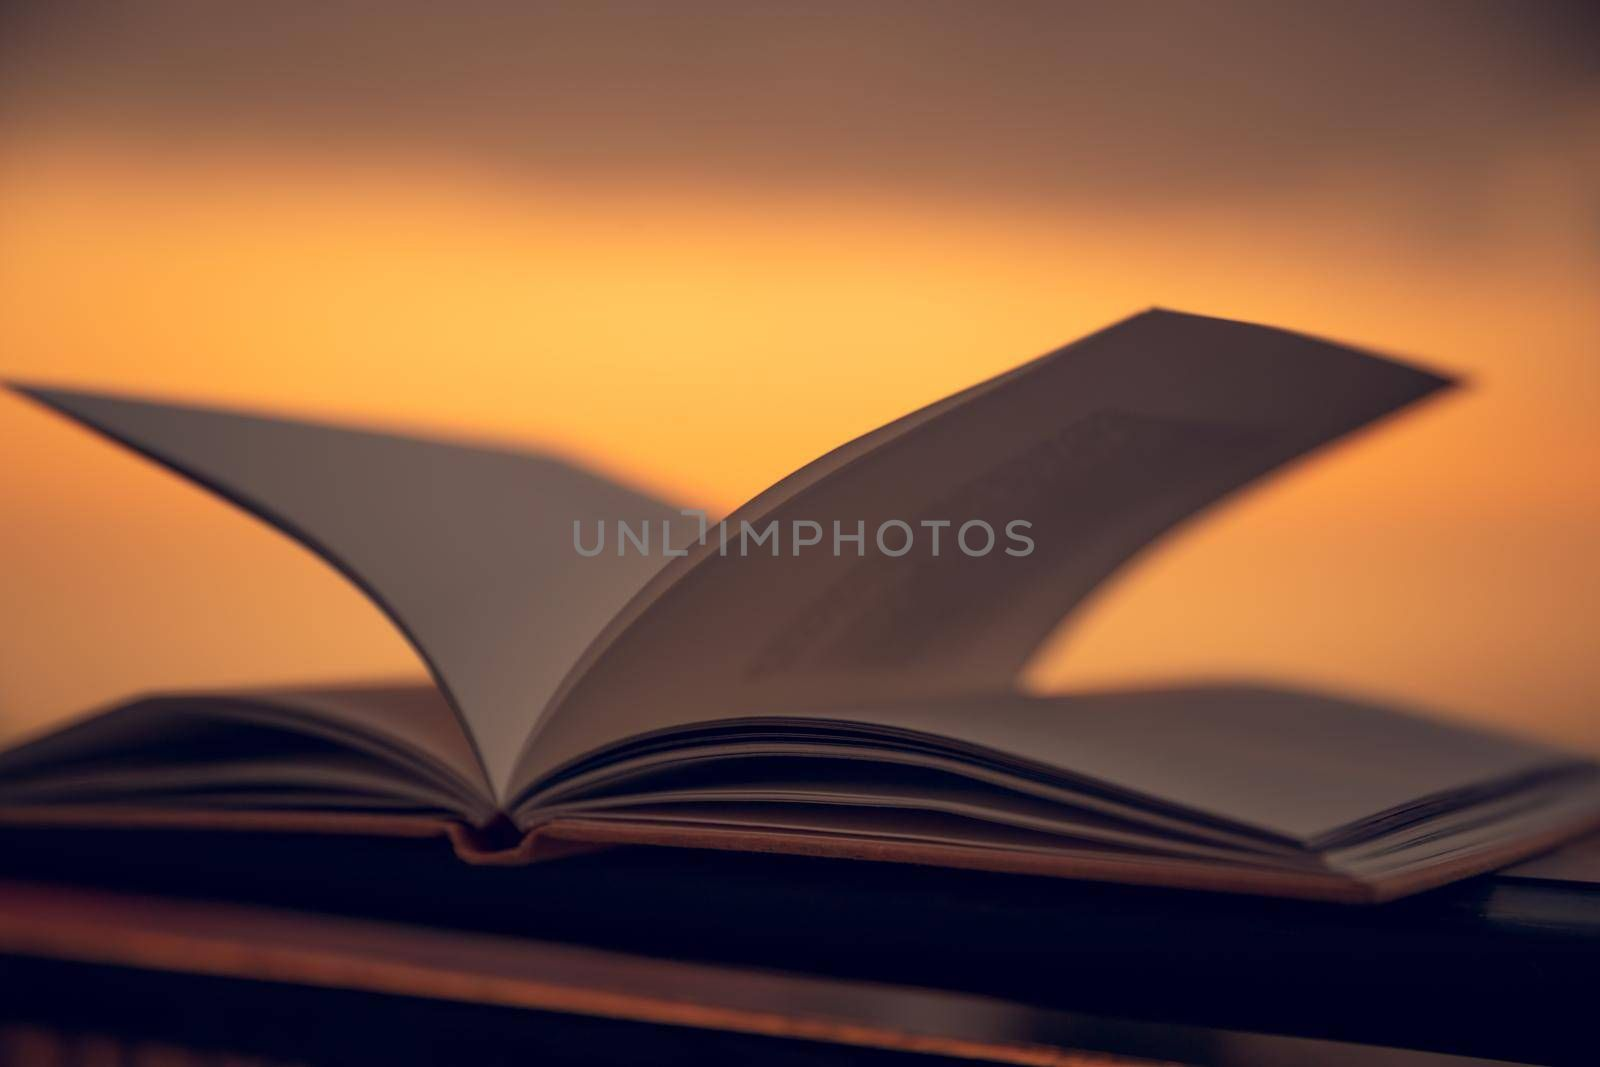 Warm Cozy Evening with an Interesting Book Outdoors. Mild Sunset Light. Calm Pleasant Pastime. Reading on Summer Holidays.